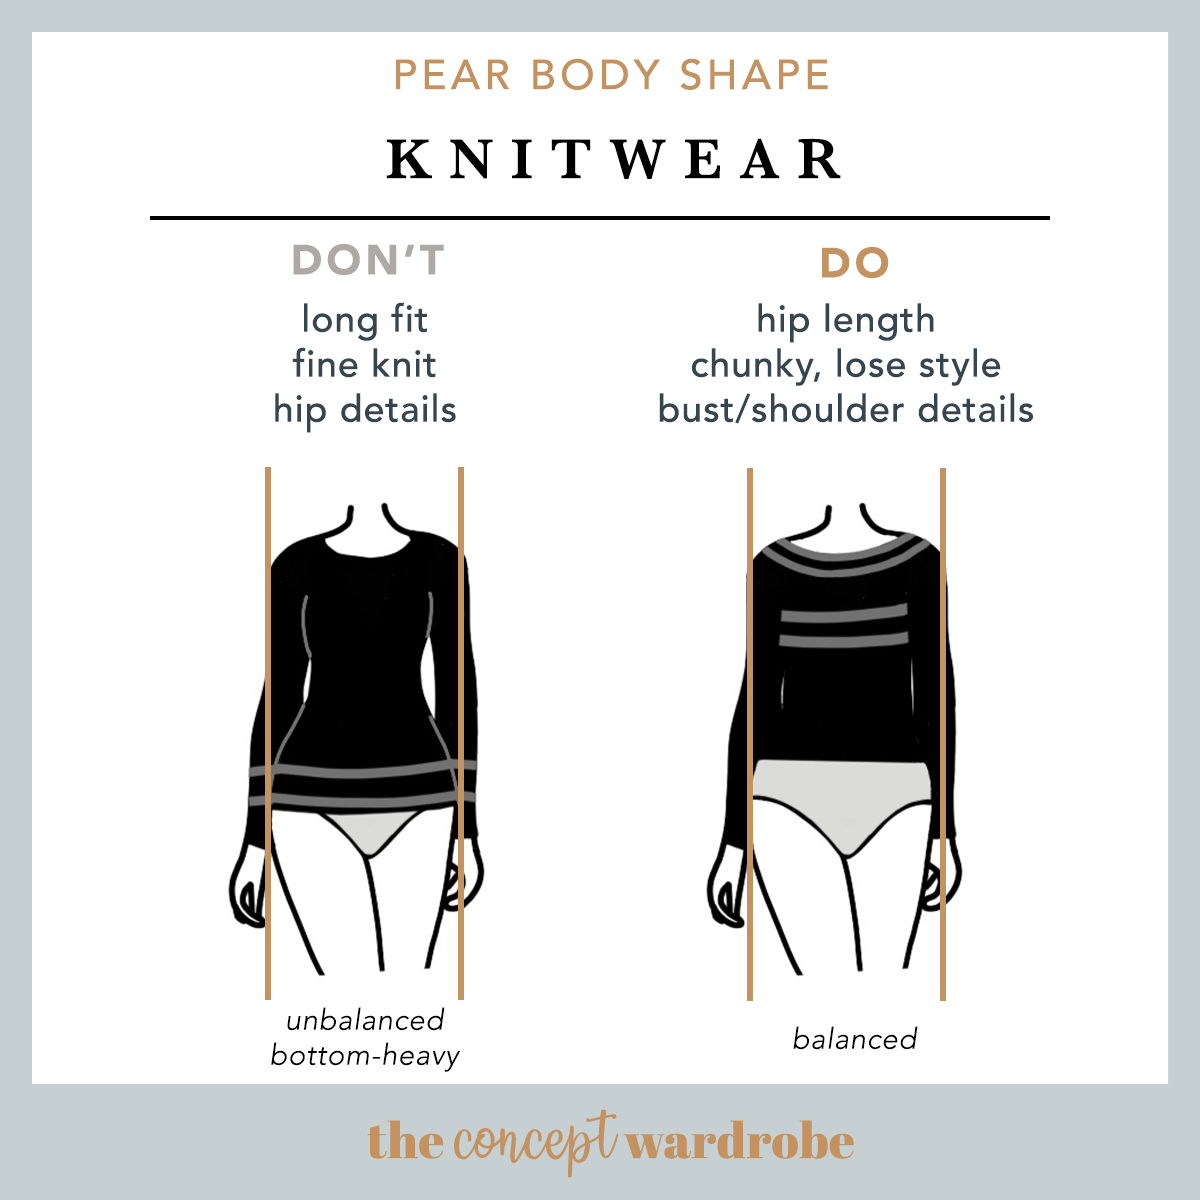 Pear Body Shape Knitwear Do's and Don'ts - the concept wardrobe